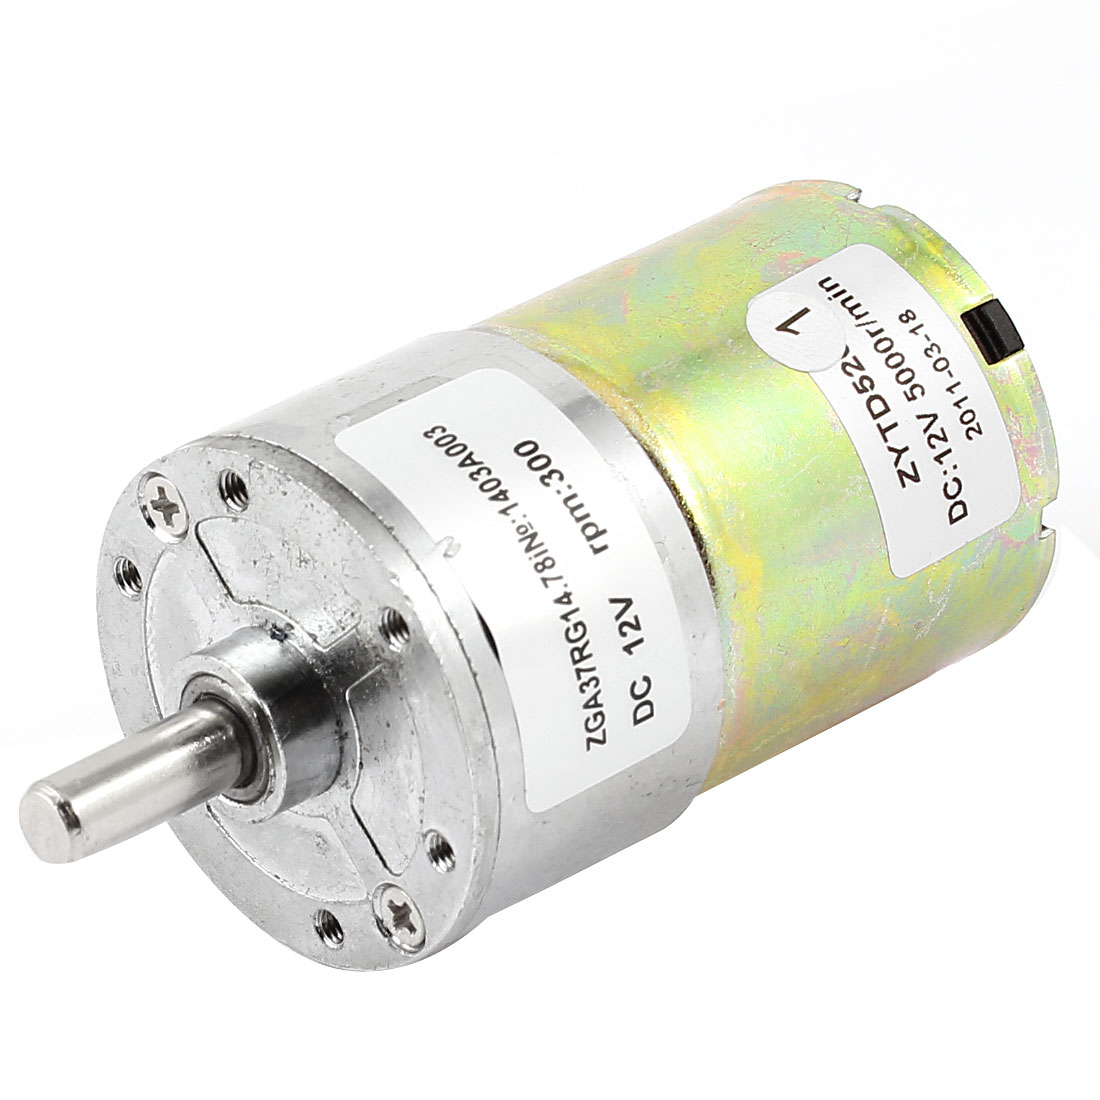 DC 12V 5000RPM 6mm Shaft Dia Speed Reduce Magnetic Electric Geared Box Motor